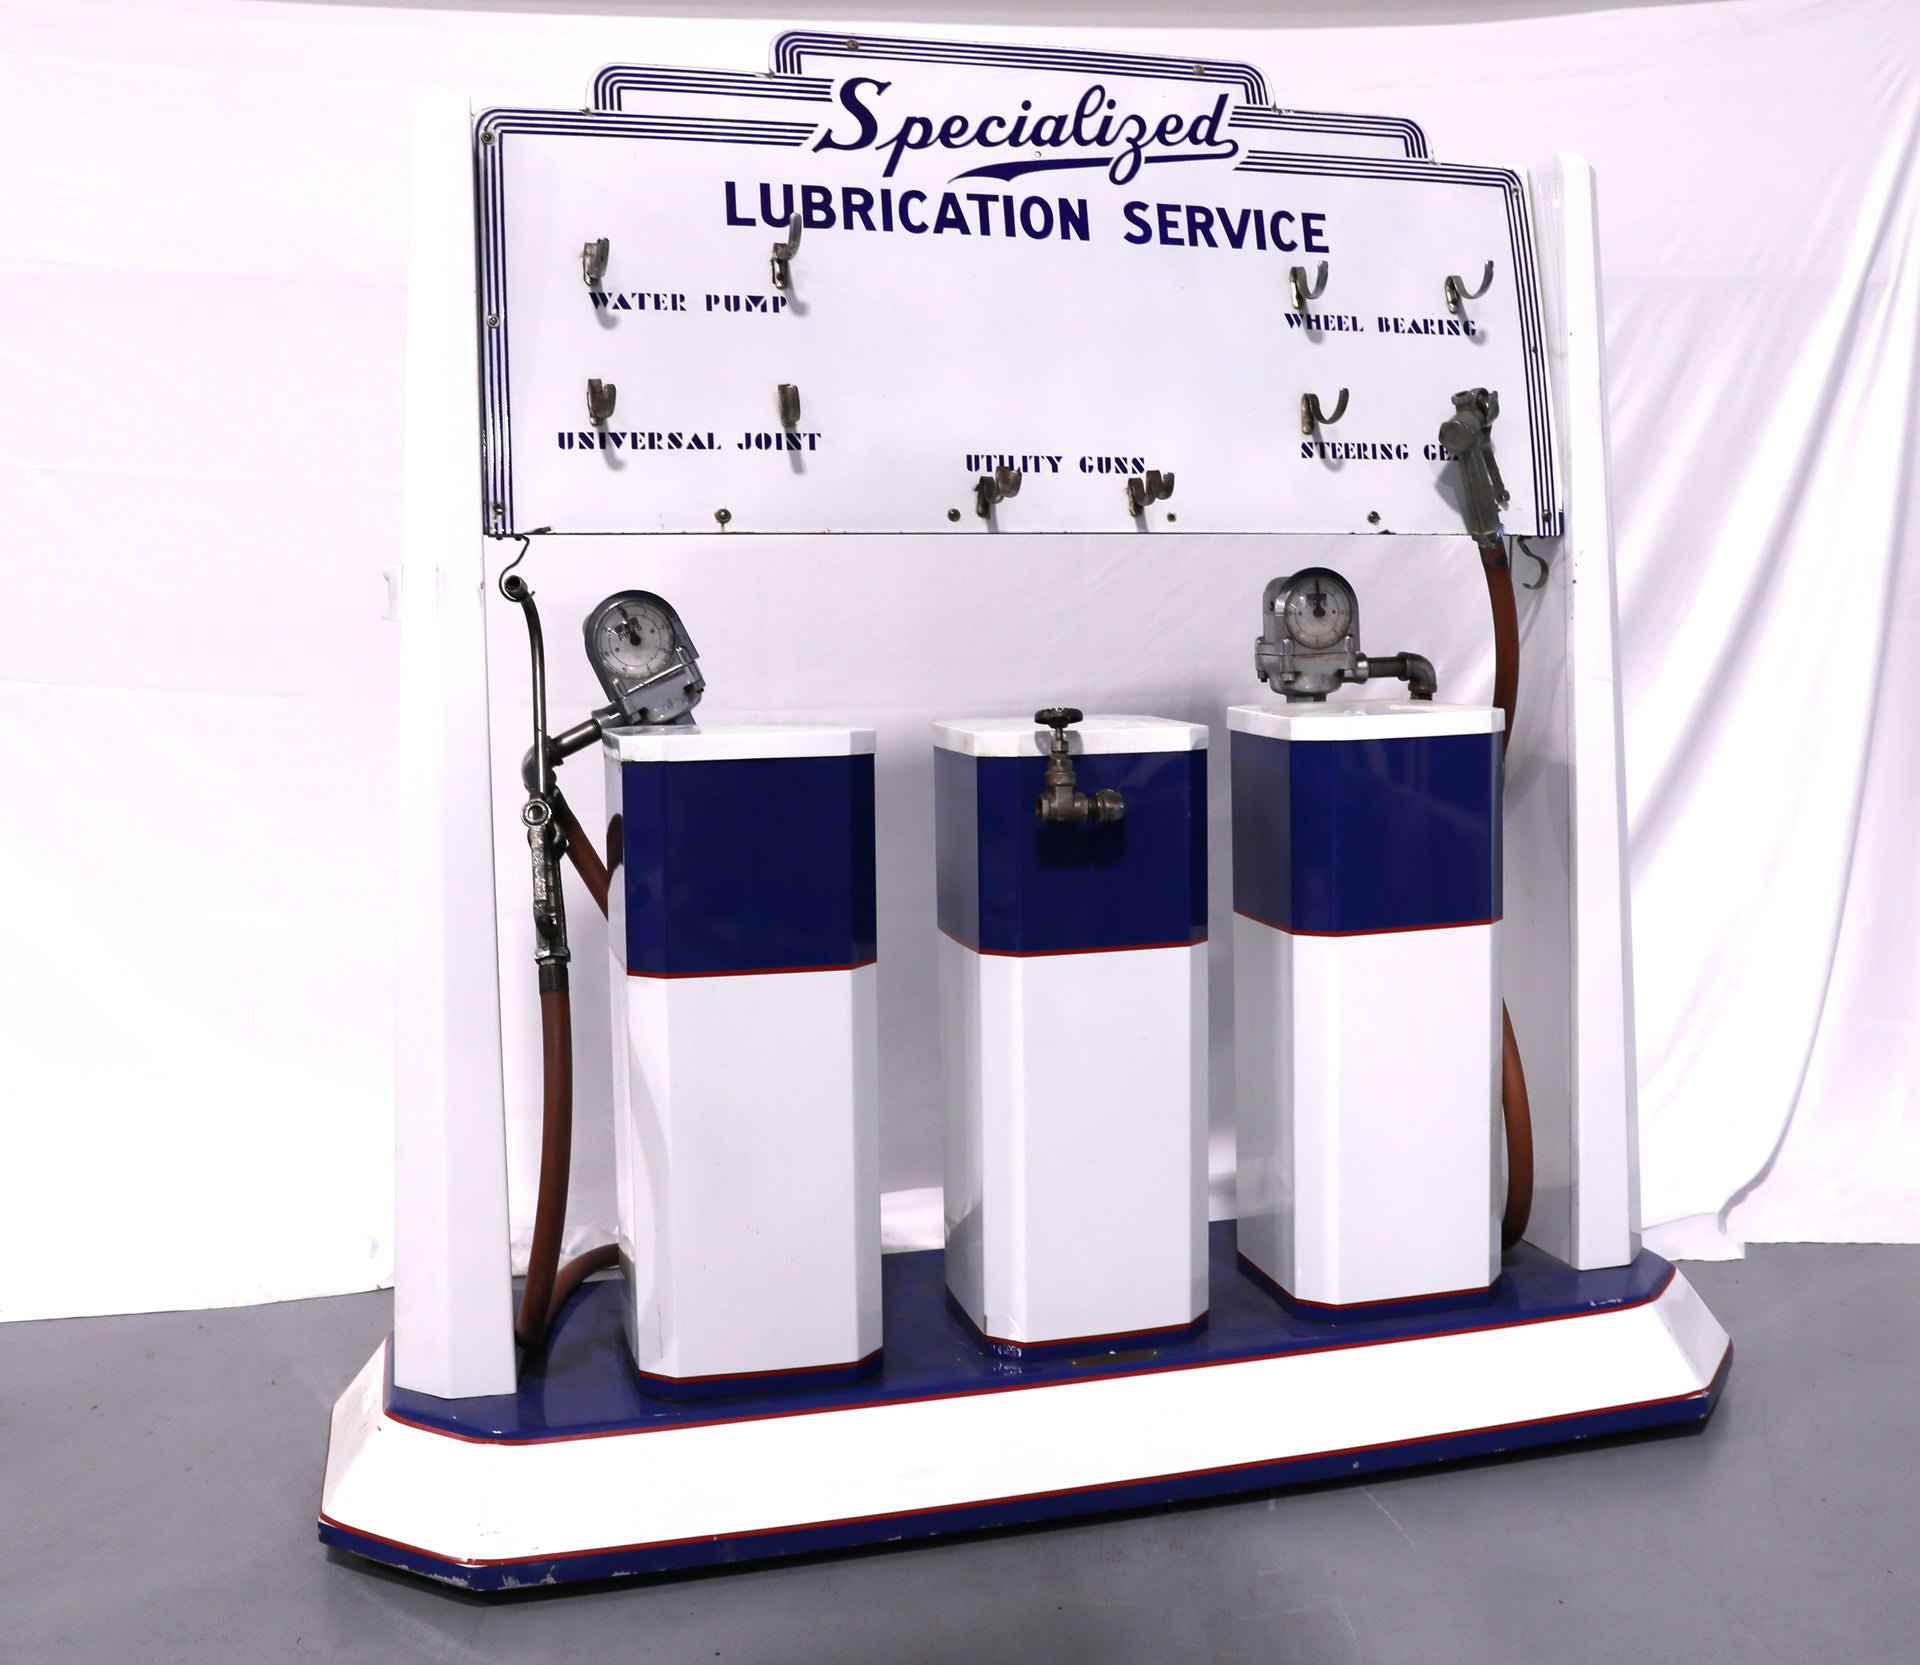 Specialized Lubrication Porcelain Service Cart Display Sign